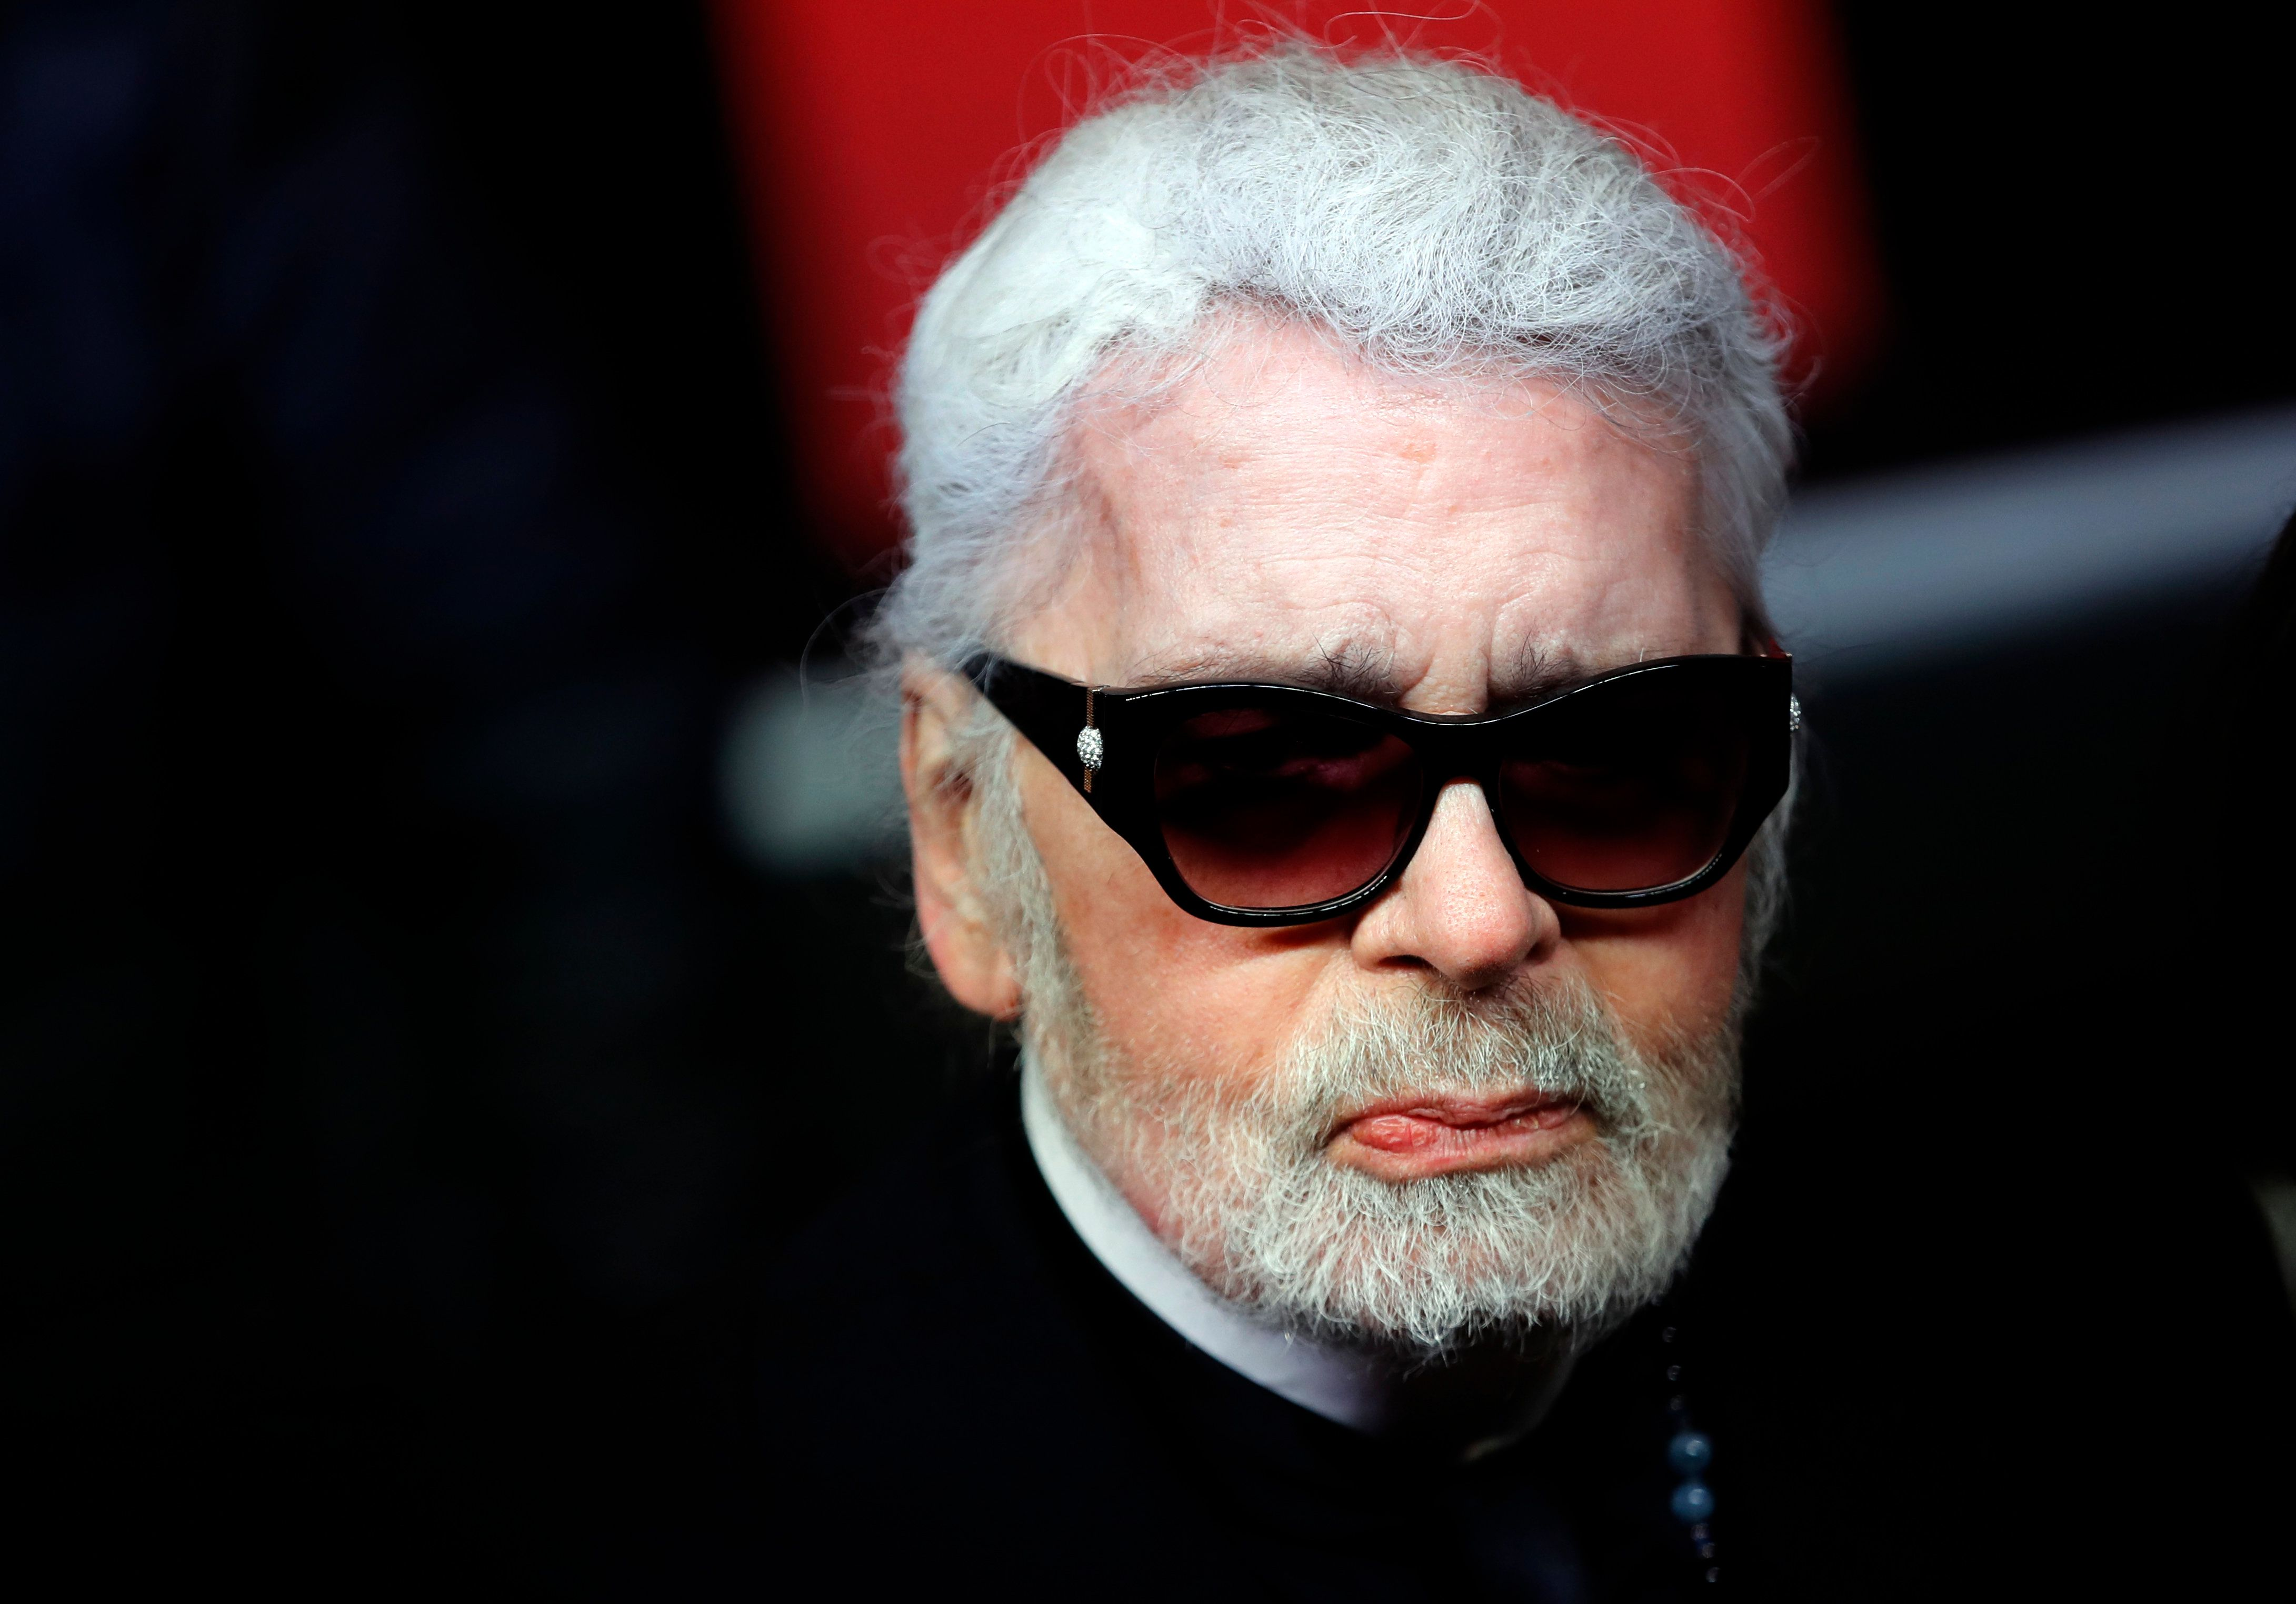 FILE  - In this Thursday, Nov. 22, 2018 file photo, Fashion designer Karl Lagerfeld poses during the Champs Elysee Avenue illumination ceremony for the Christmas season, in Paris. Chanel's octogenarian designer Karl Lagerfeld, who has looked increasingly frail in recent seasons, did not come out to take a bow at the house's couture show in Paris, something the company attributed to him being tired, it was reported on Tuesday, Jan. 22, 2019.  It is the first time in recent memory that Lagerfeld, who has designed for the house since 1983, has not come out to receive applause at the end of one of his shows. (AP Photo/Christophe Ena, File)